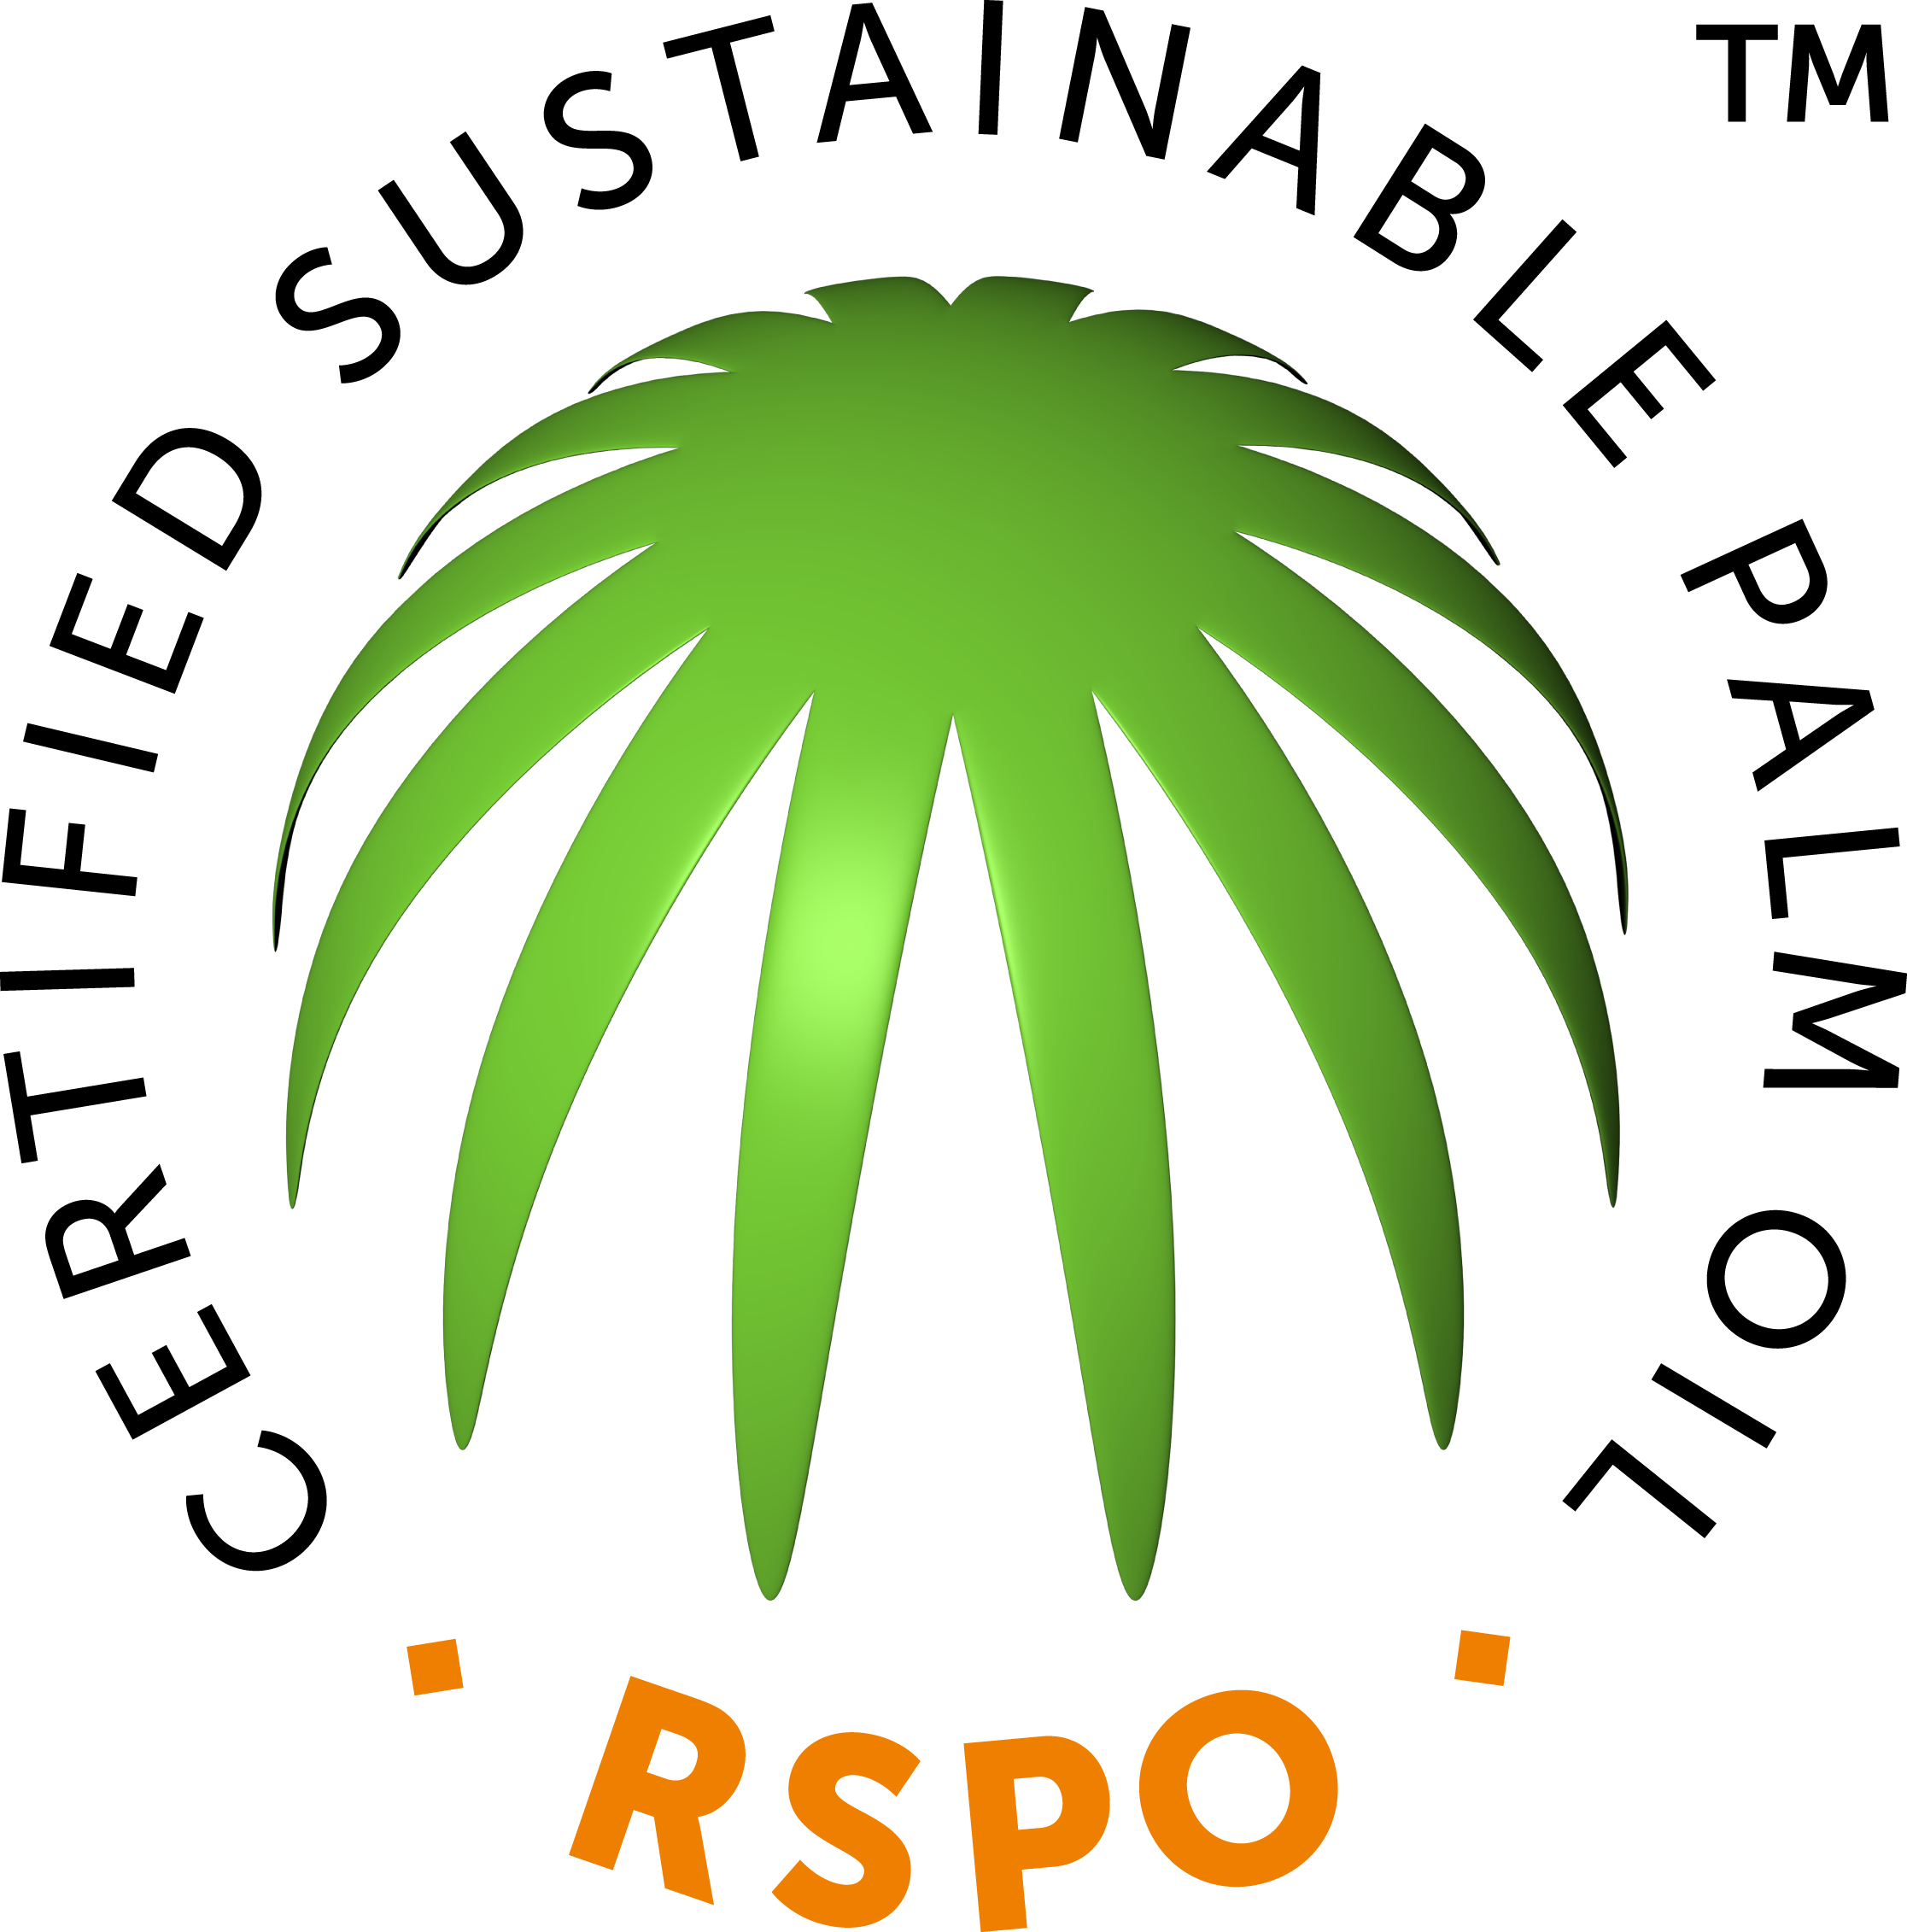 SELLO RSPO PALM OIL COSMETICA ECOLOGICA Y NATURAL